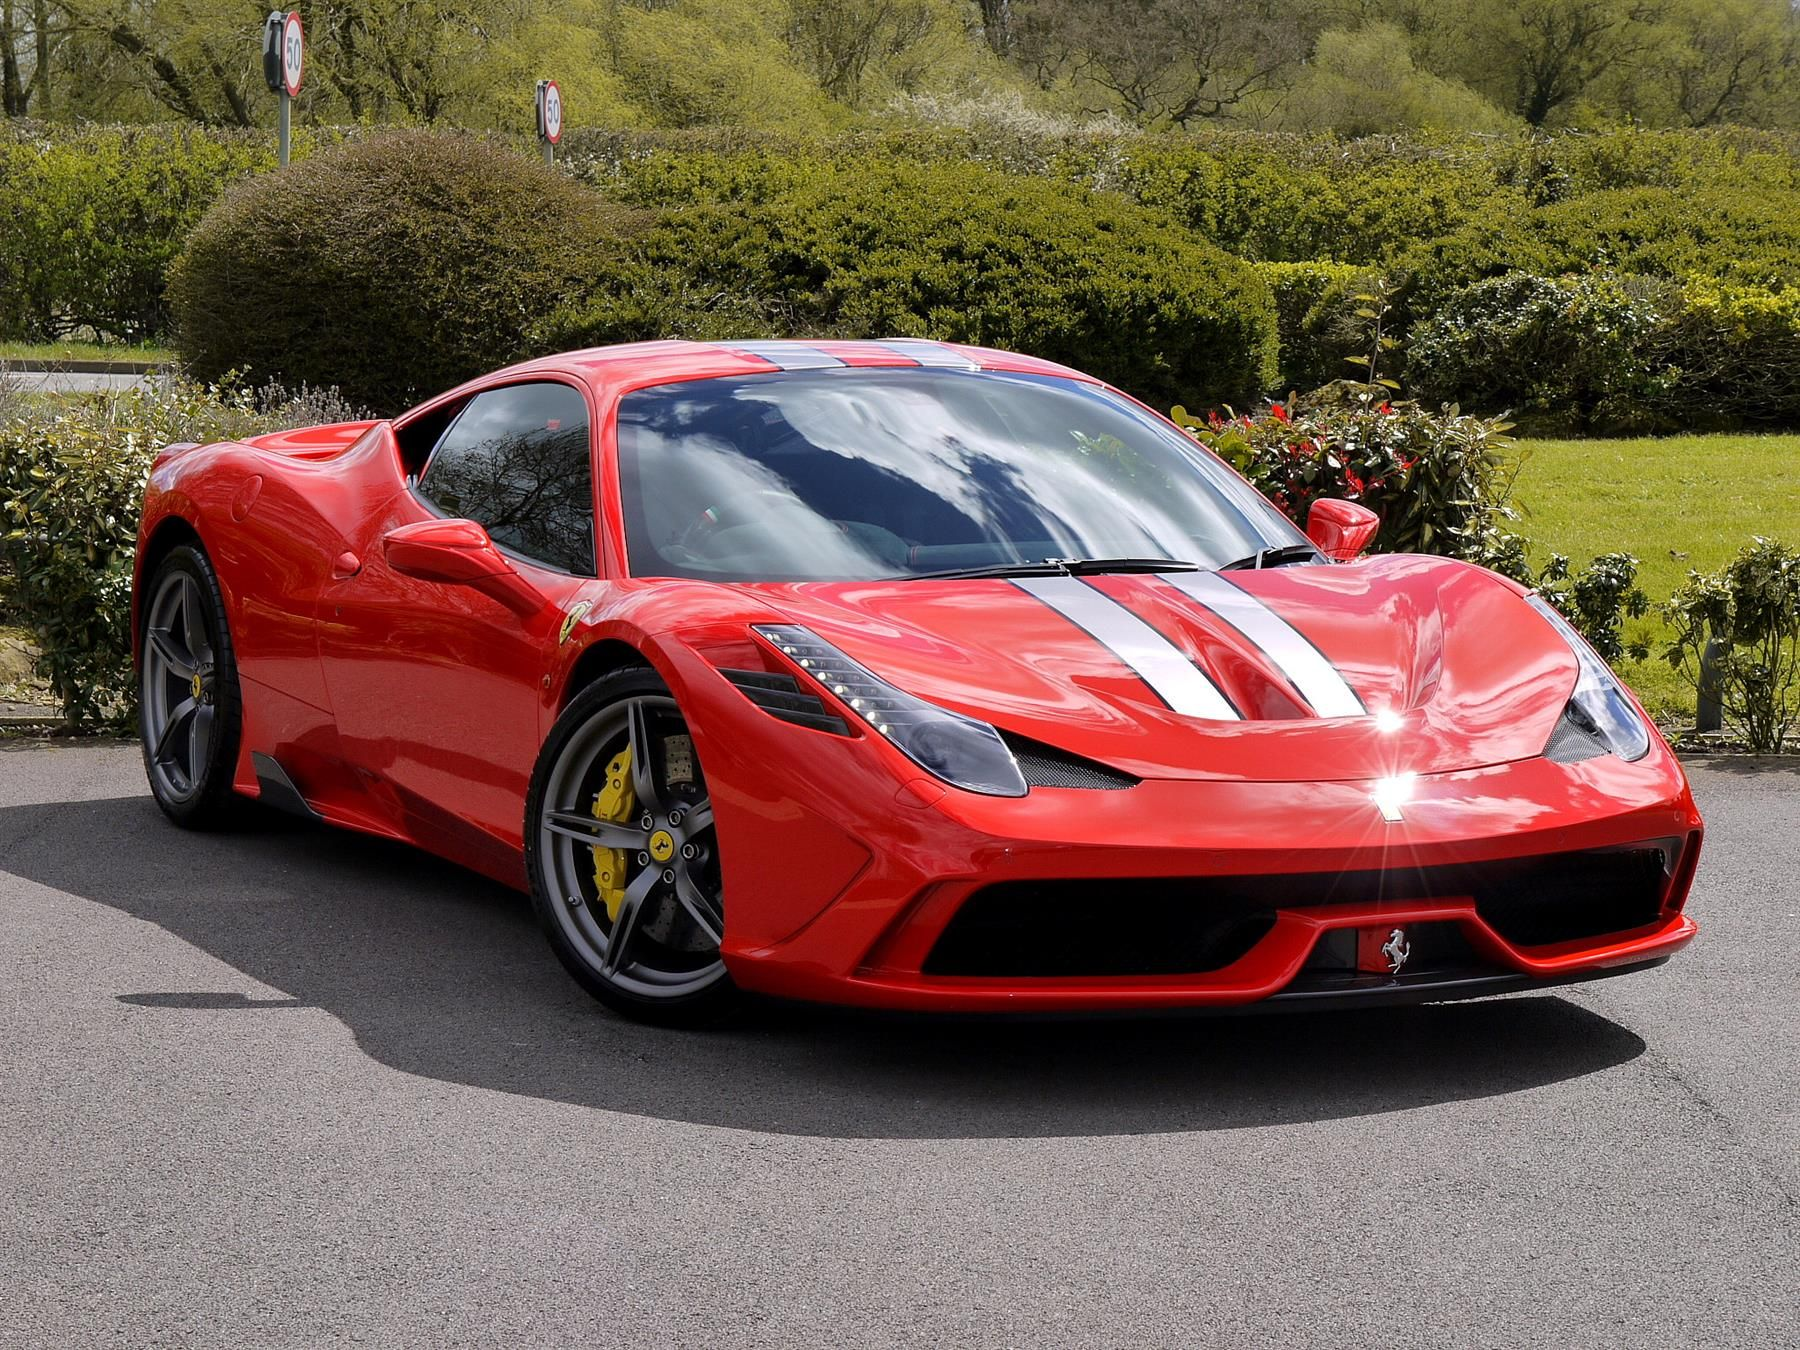 infinity used southampton hampshire ff for car in sale ferrari